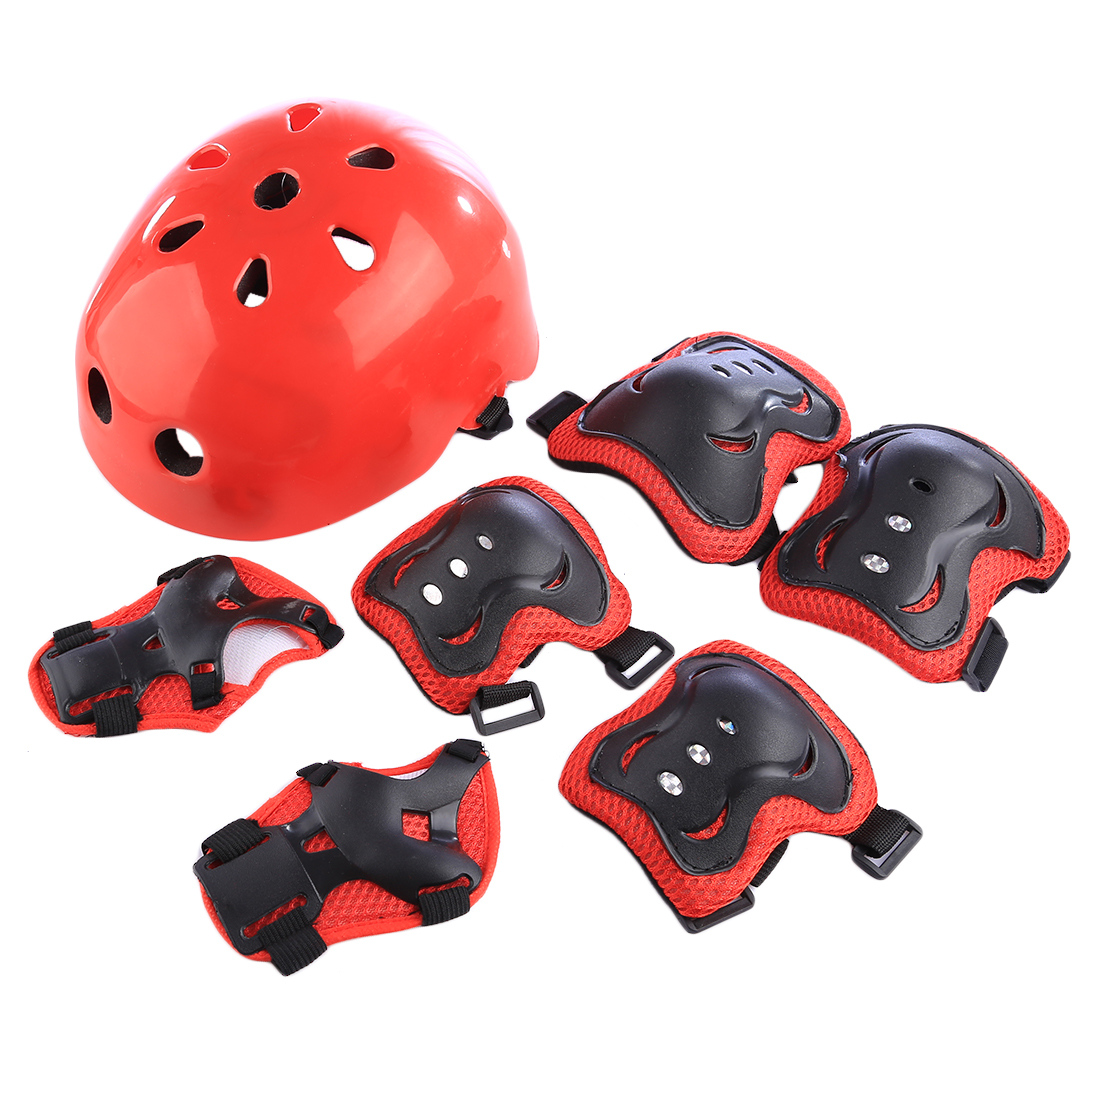 Ryan/'s World Awesome Helmet /& Protective Knee /& Elbow Pads Pad Gear Set NEW